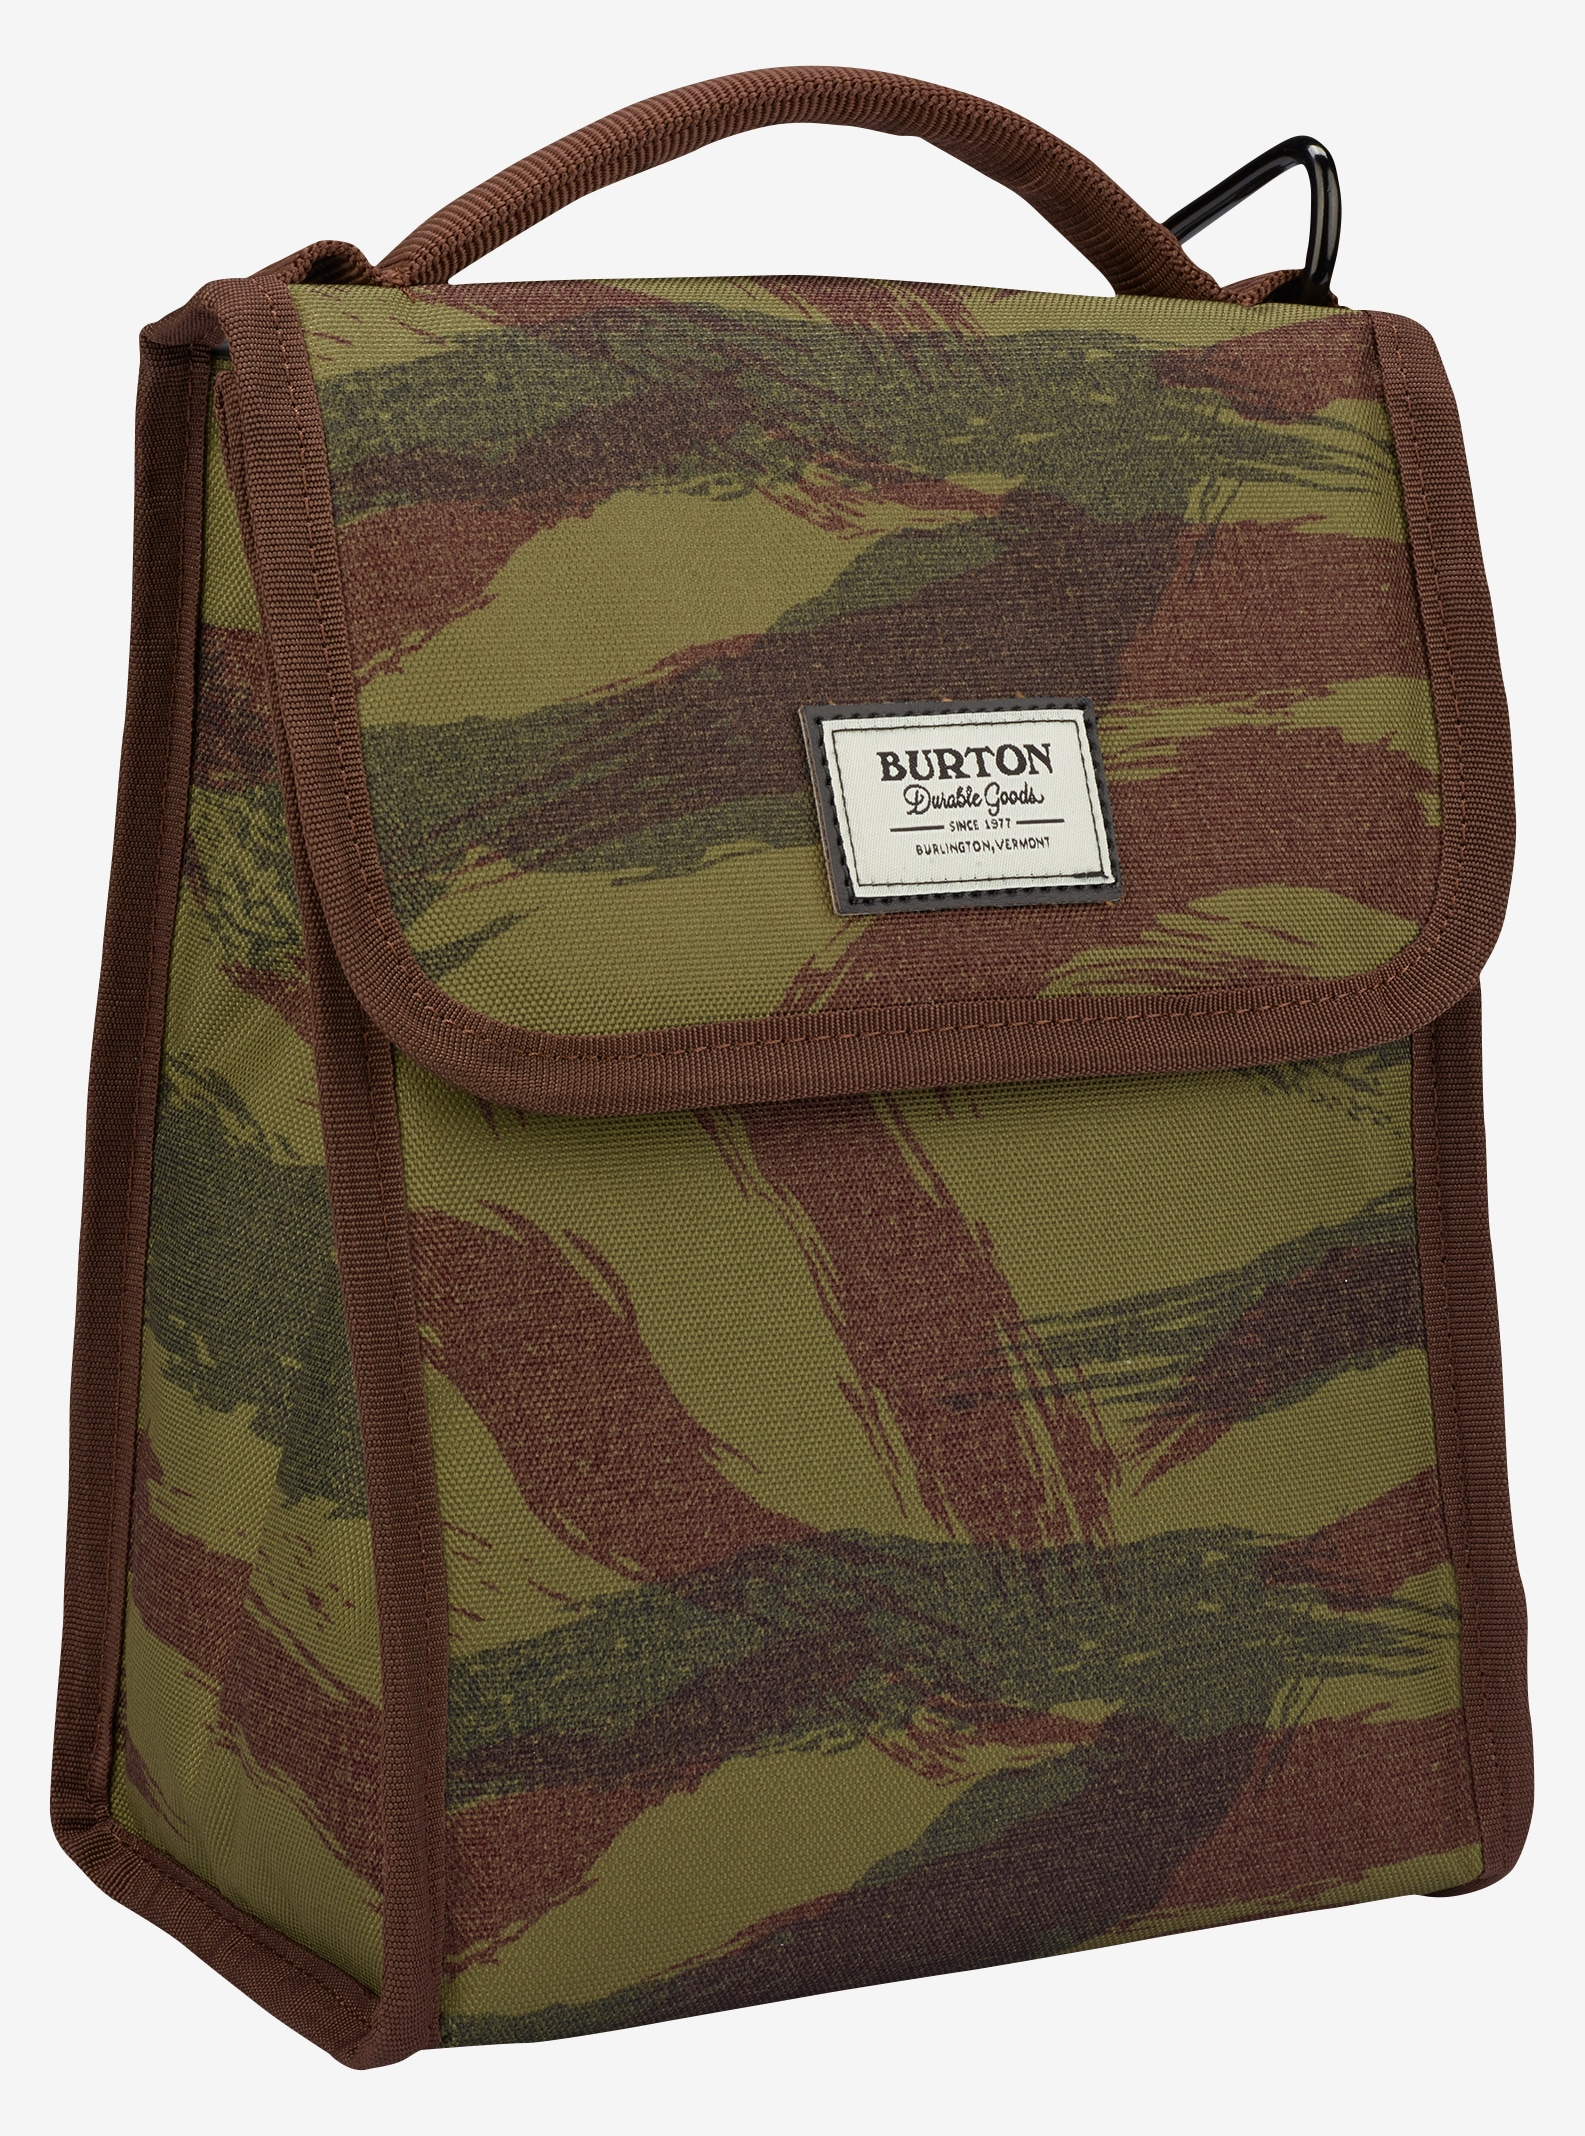 Burton Lunch Sack shown in Brushstroke Camo Print